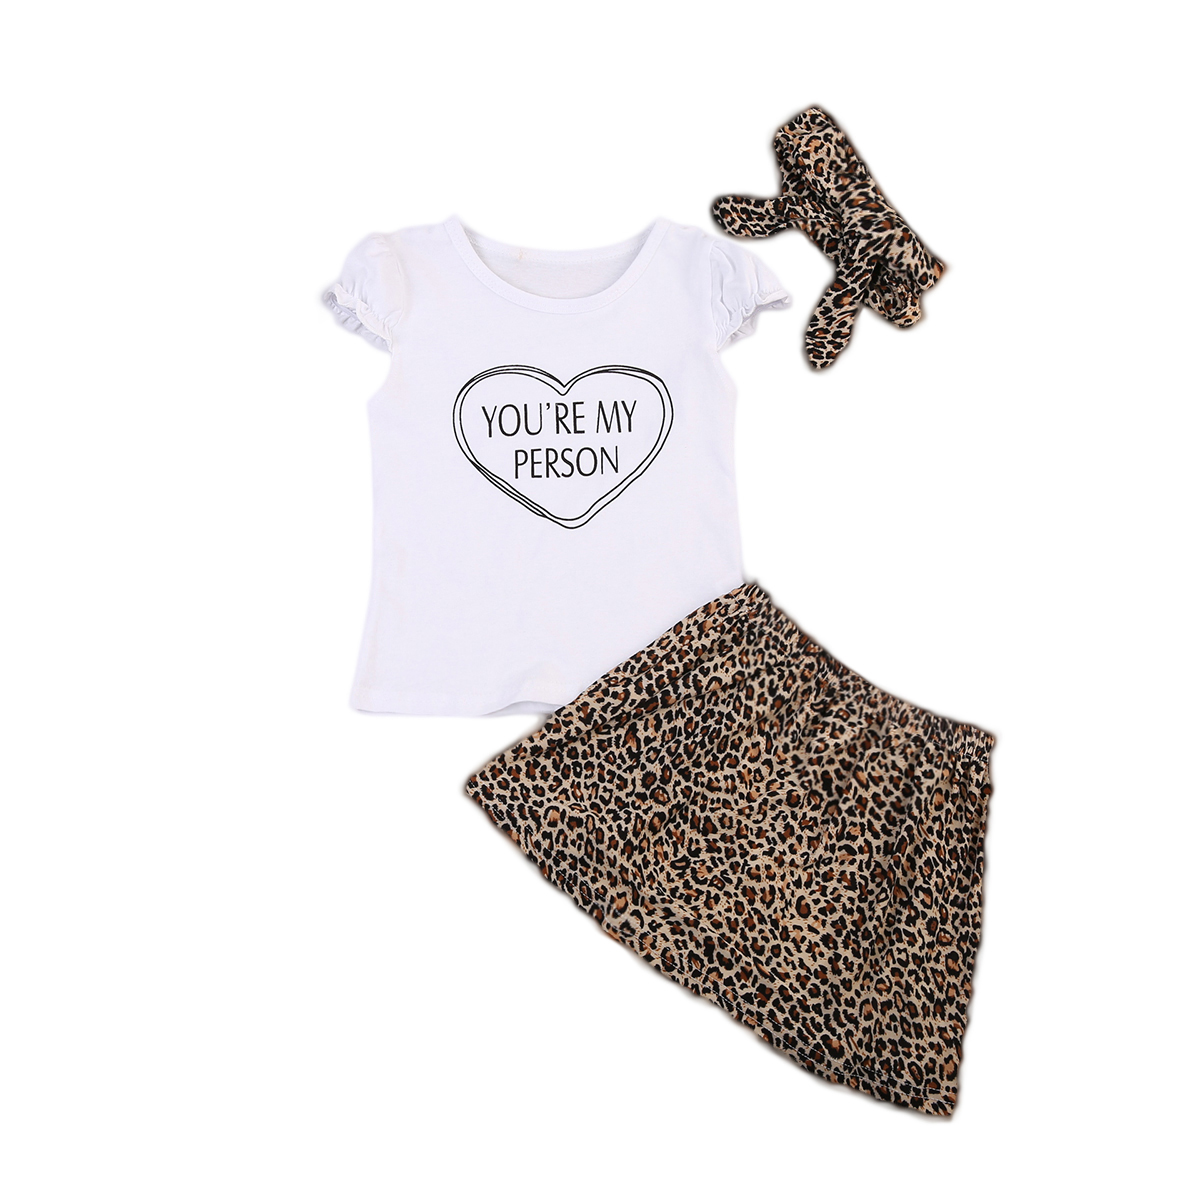 Babies girl Leopard Skirt Clothing Set Toddler Infant Baby Girls Outfit Kids Clothes T-shirt Tops+Leopard Skirt+Headband Sets toddler kids baby girls clothing cotton t shirt tops short sleeve pants 2pcs outfit clothes set girl tracksuit